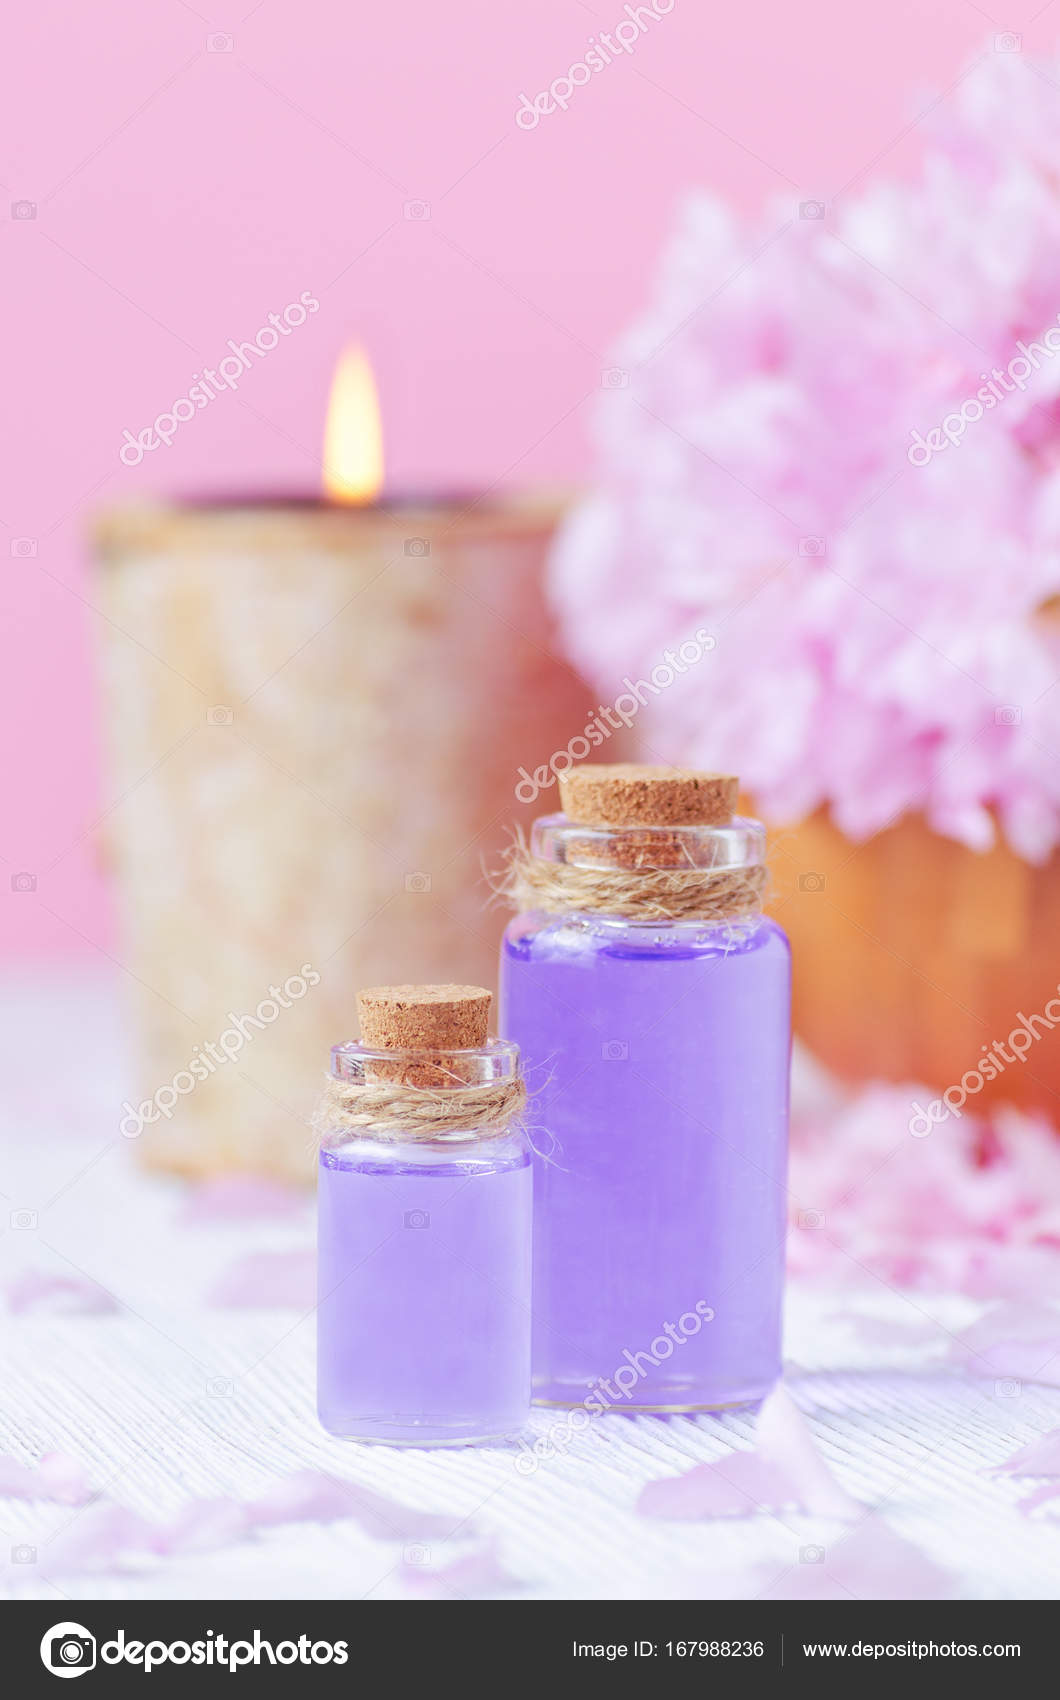 Pink Color Spa Concept Lavender Oil Vertical Stock Photo